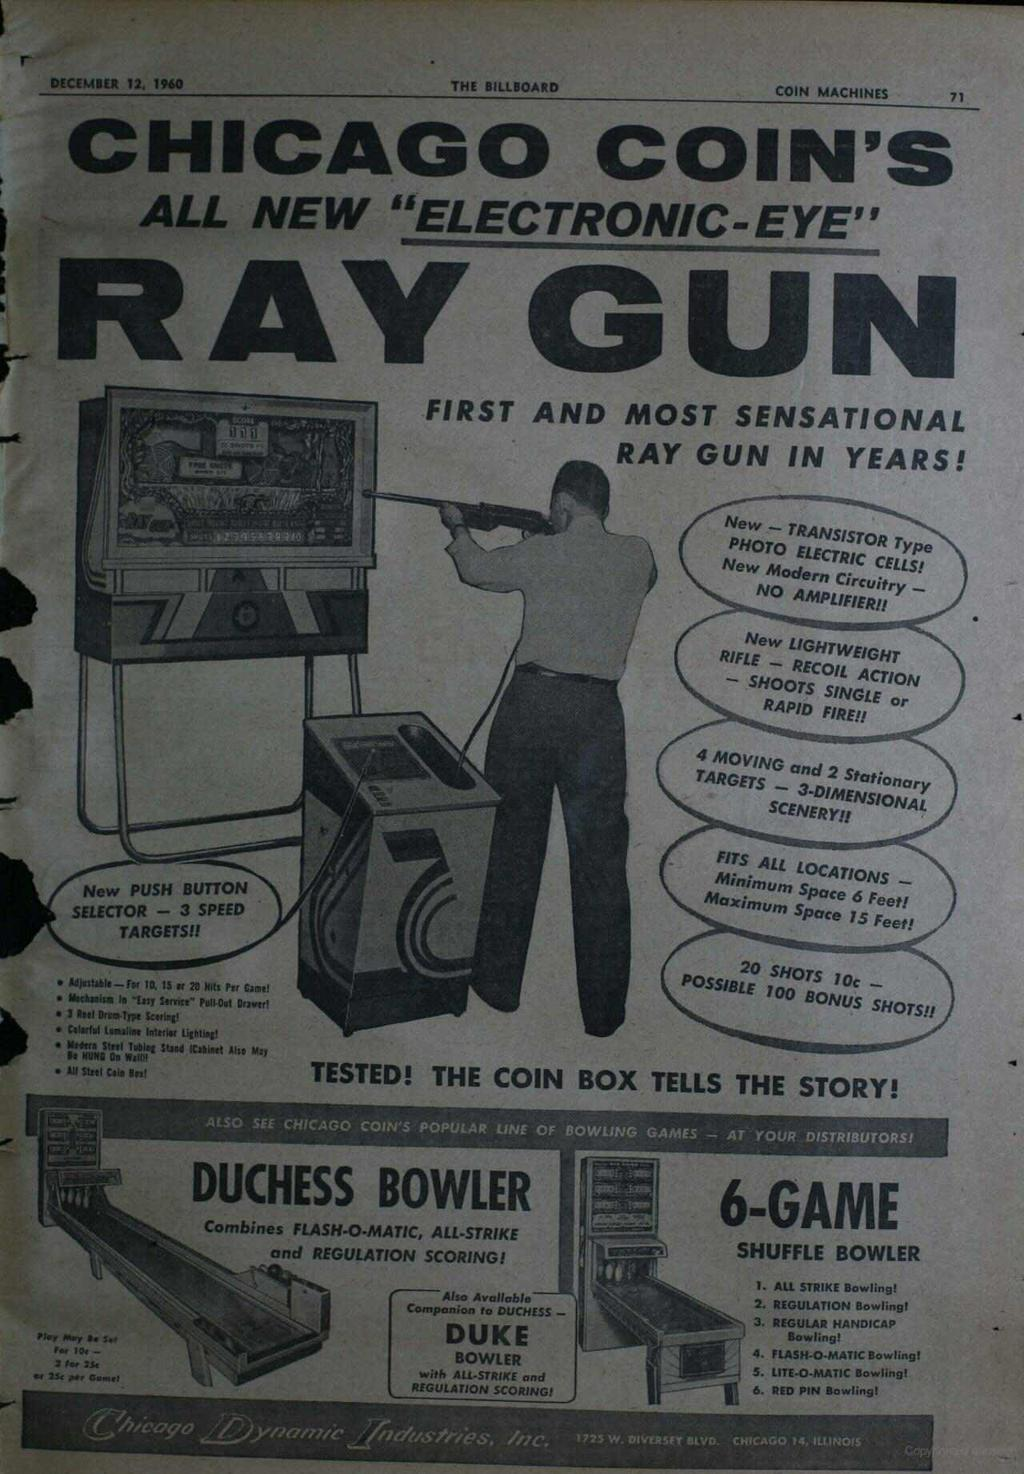 "r CHICAGO COIN'S ALL NEW ""ELECTRONIC-EYE"" DECEMBER 12, 1960 THE BILLBOARD COIN MACHINES 71 FRAY GUN FIRST AND MOST SENSATIONAL RAY GUN IN YEARS! New - TRANSISTOR Type ì ELECTRIC CELLS!"